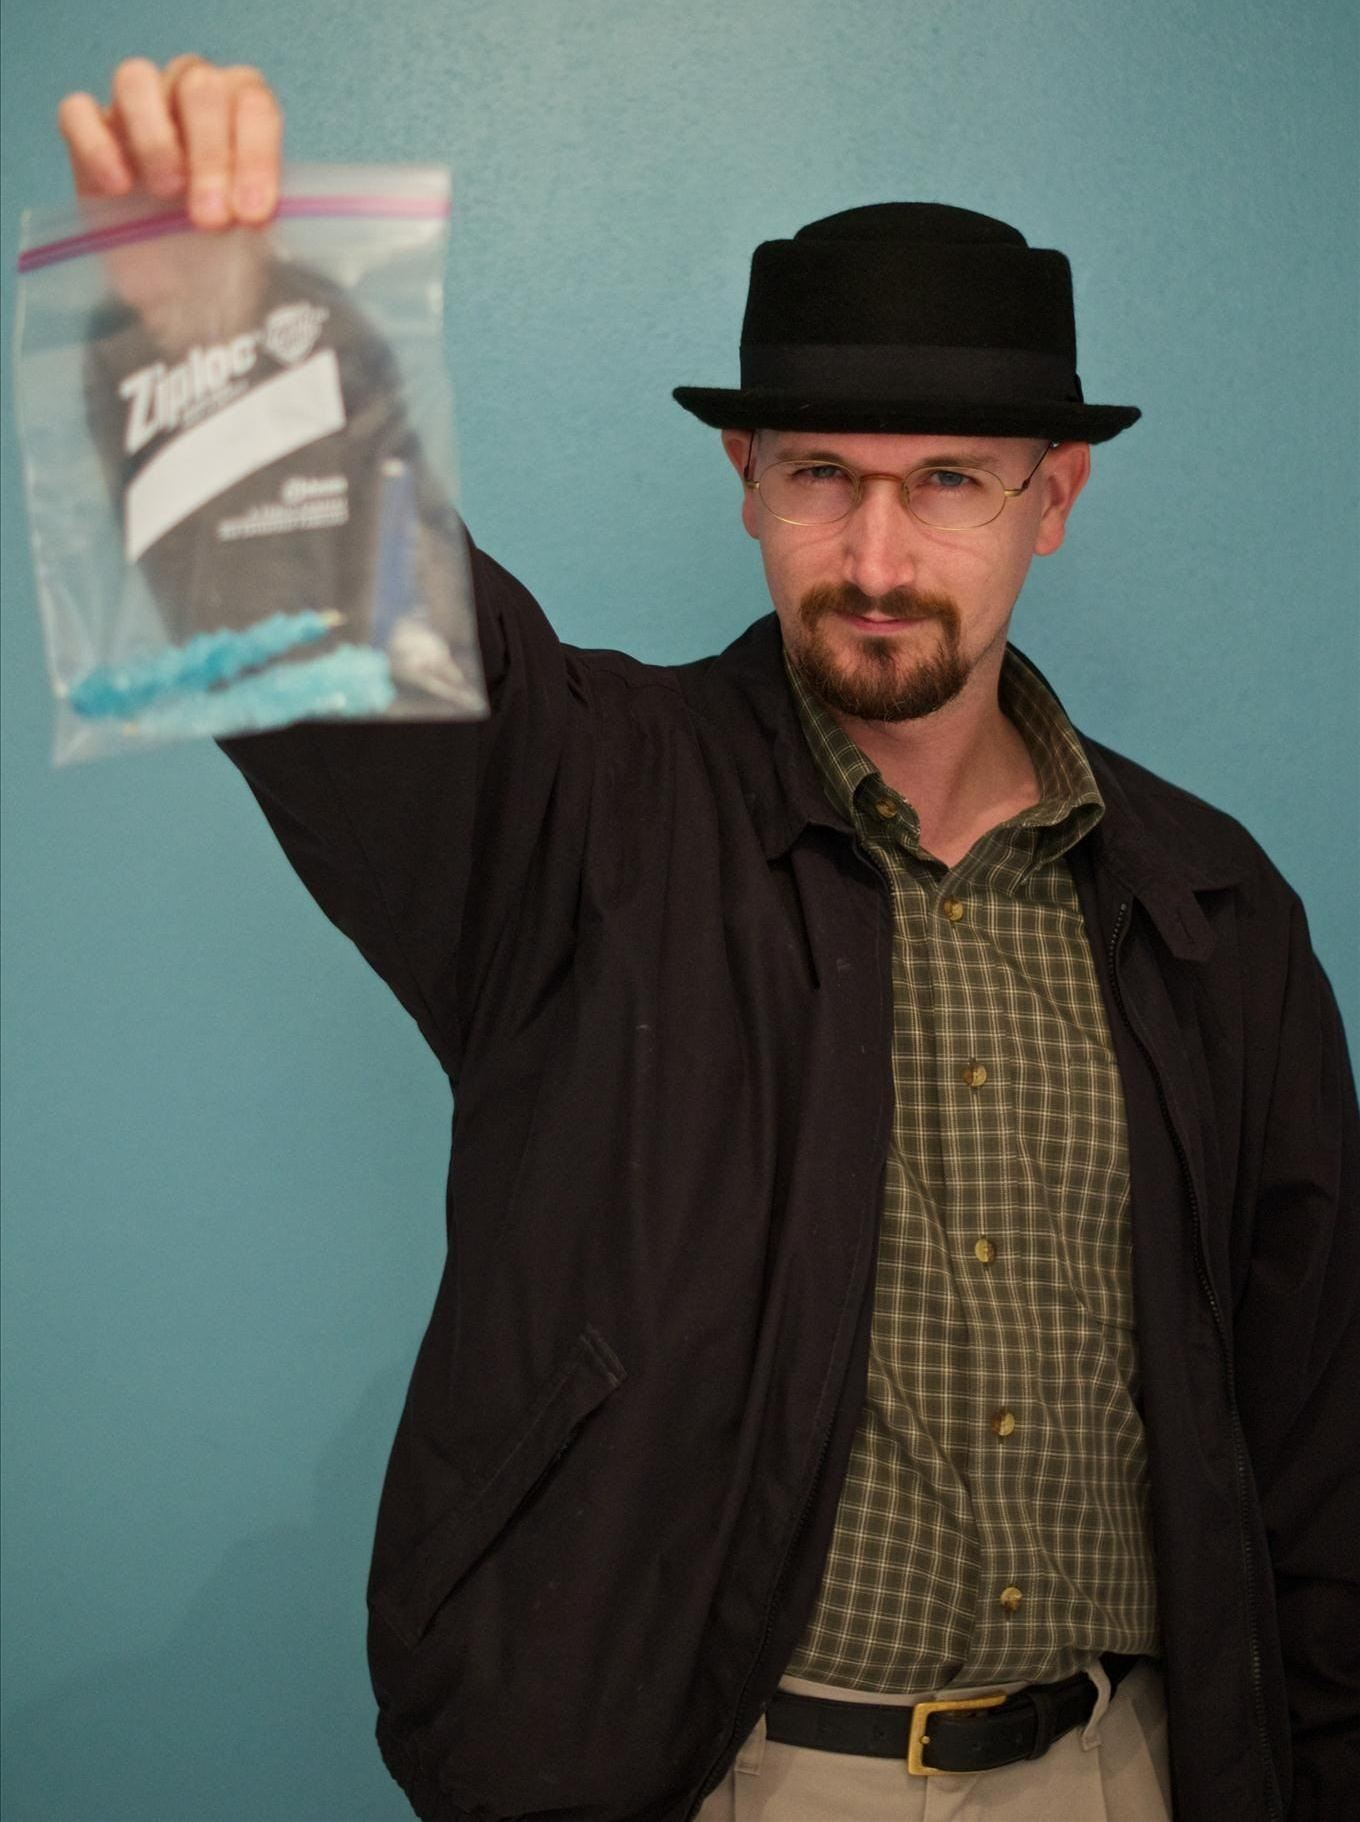 female walter white costume - photo #23